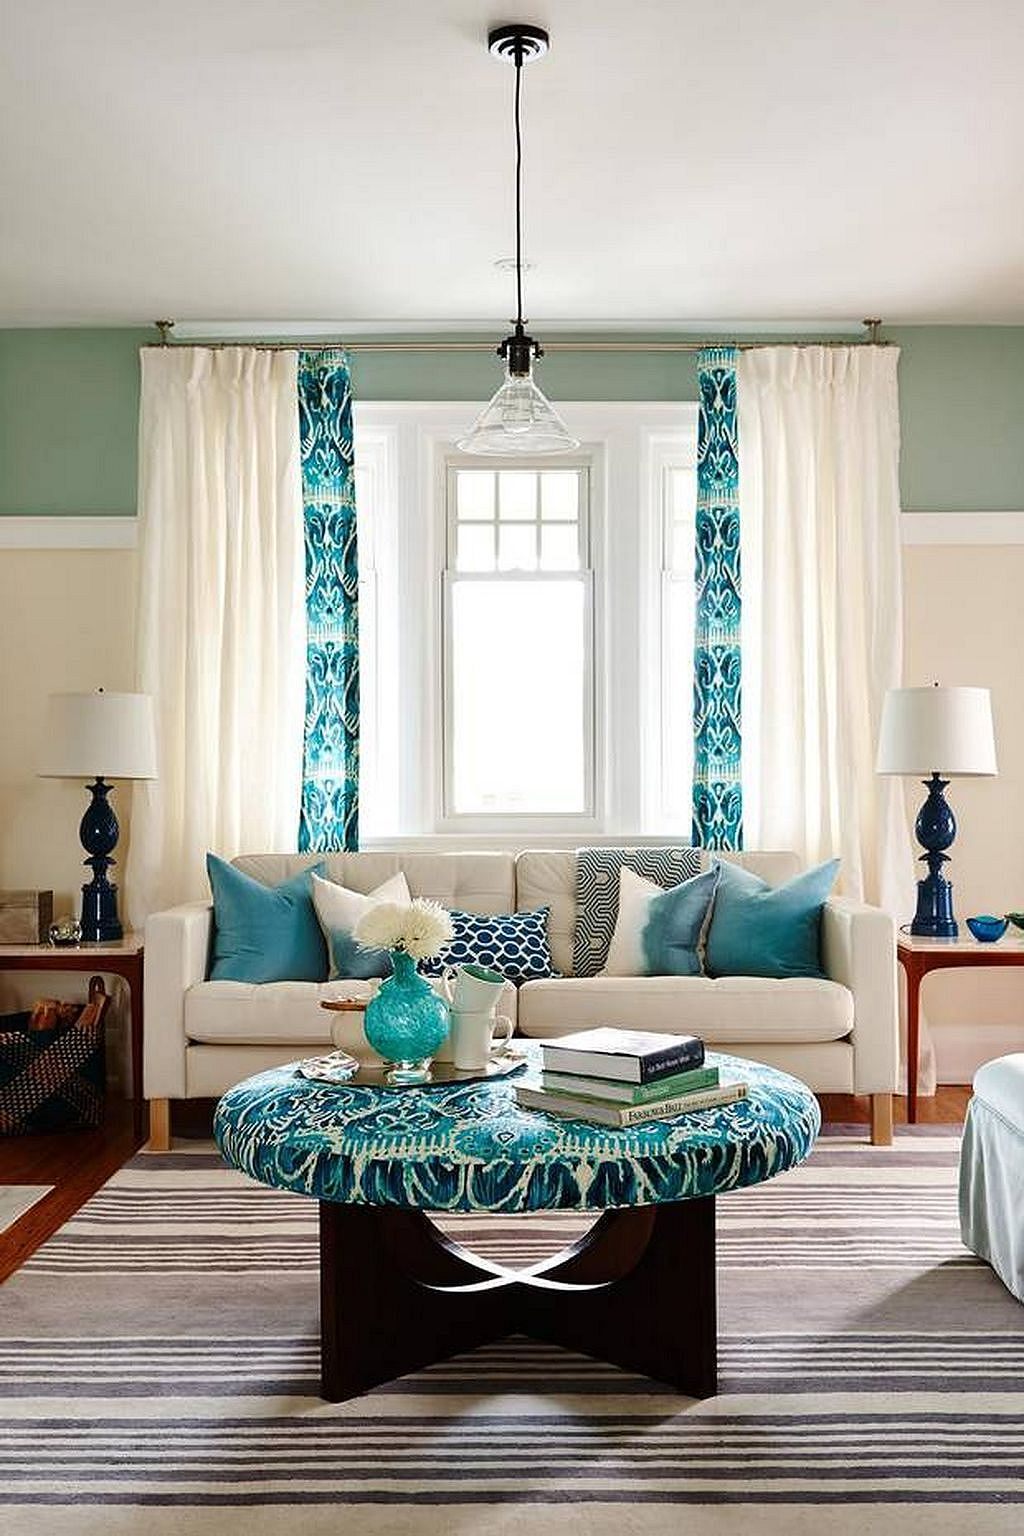 15 Best Images About Turquoise Room Decorations | Turquoise living ...